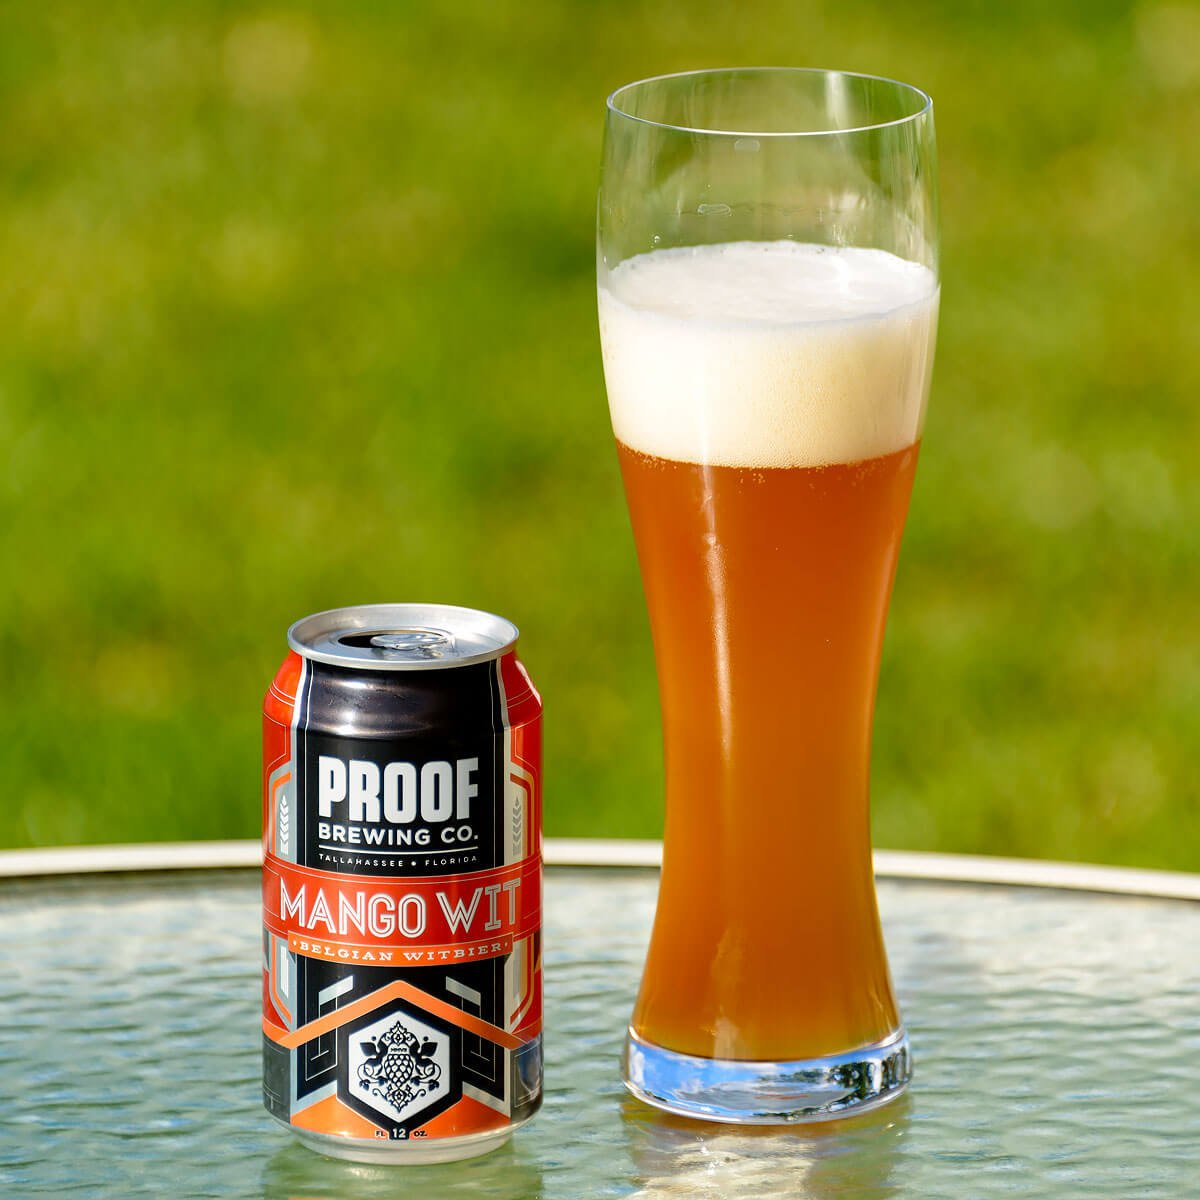 Mango Wit, a Belgian-style Witbier by Proof Brewing Co.